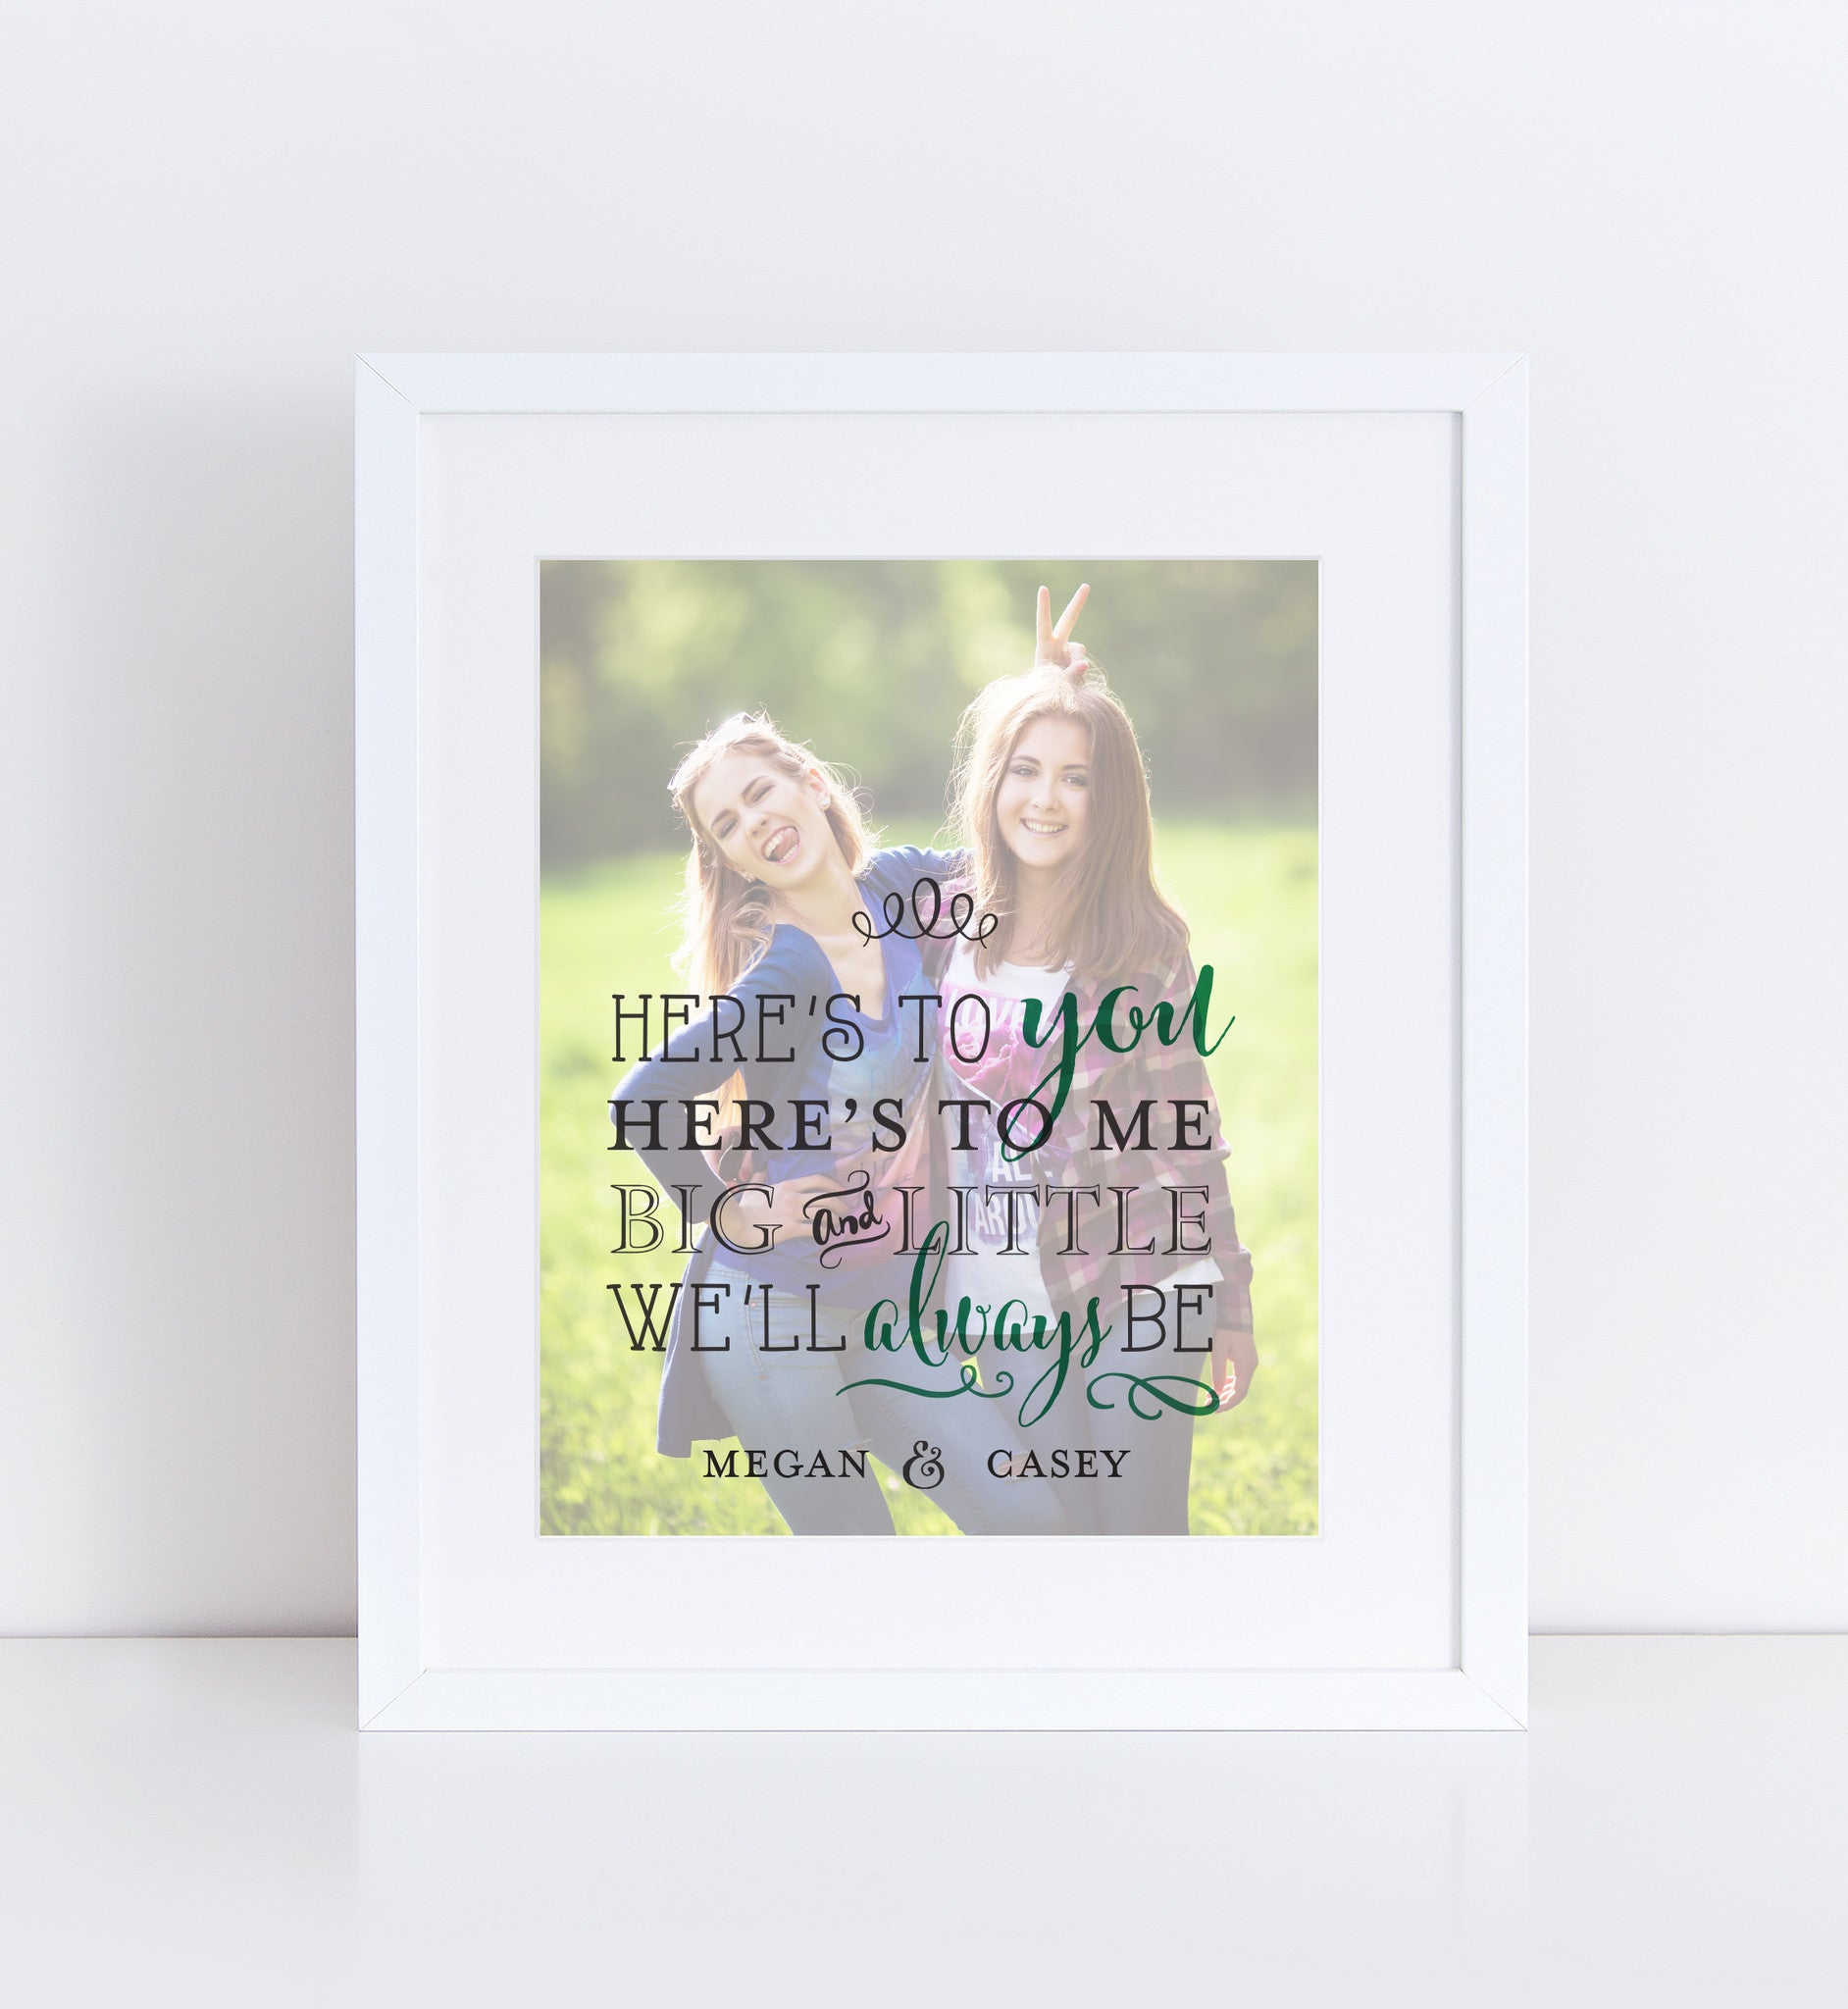 Here's To You & Me, Personalized Photo Gifts